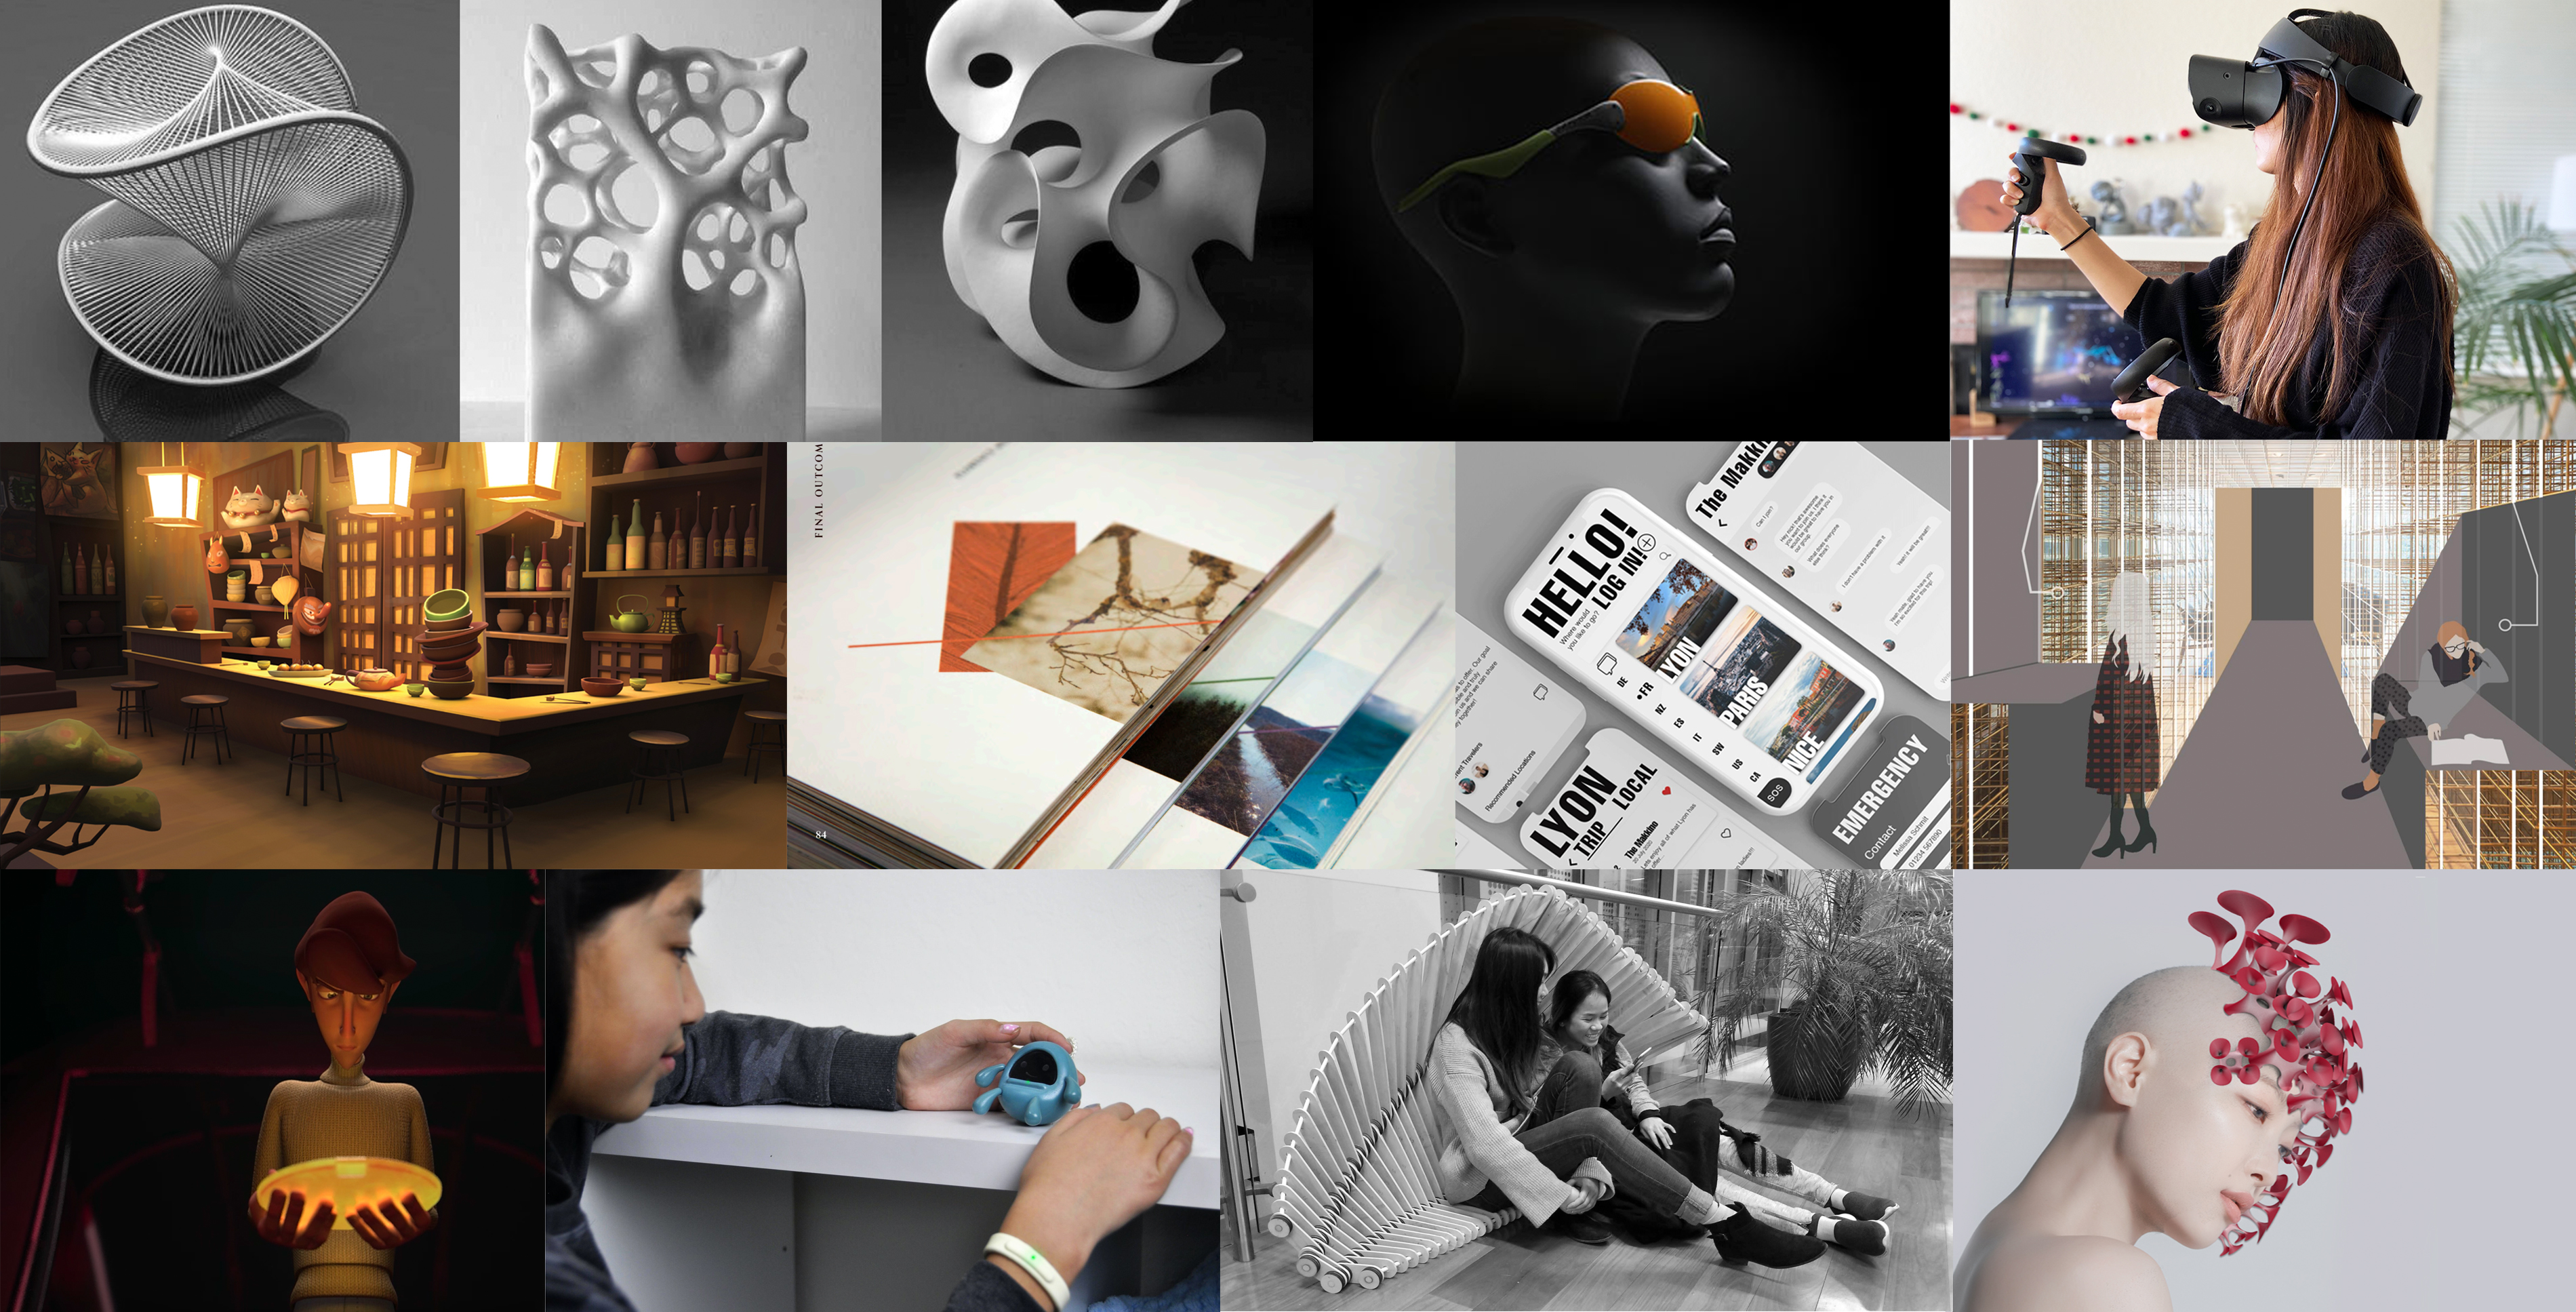 Collage of Design-related Pictures